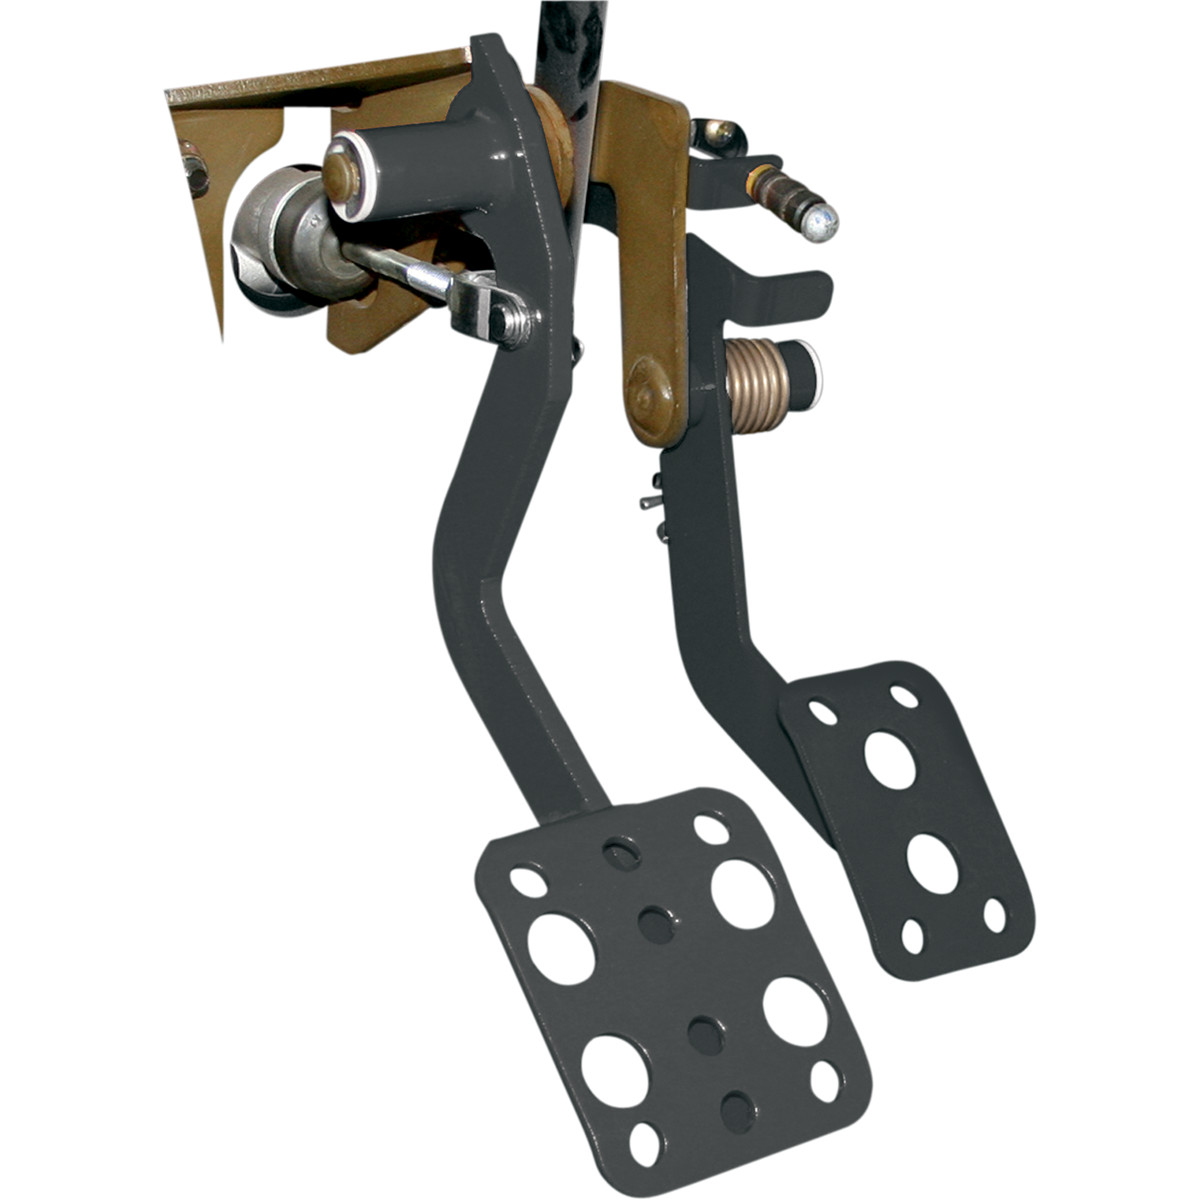 POLARIS CUSTOM GAS PEDAL